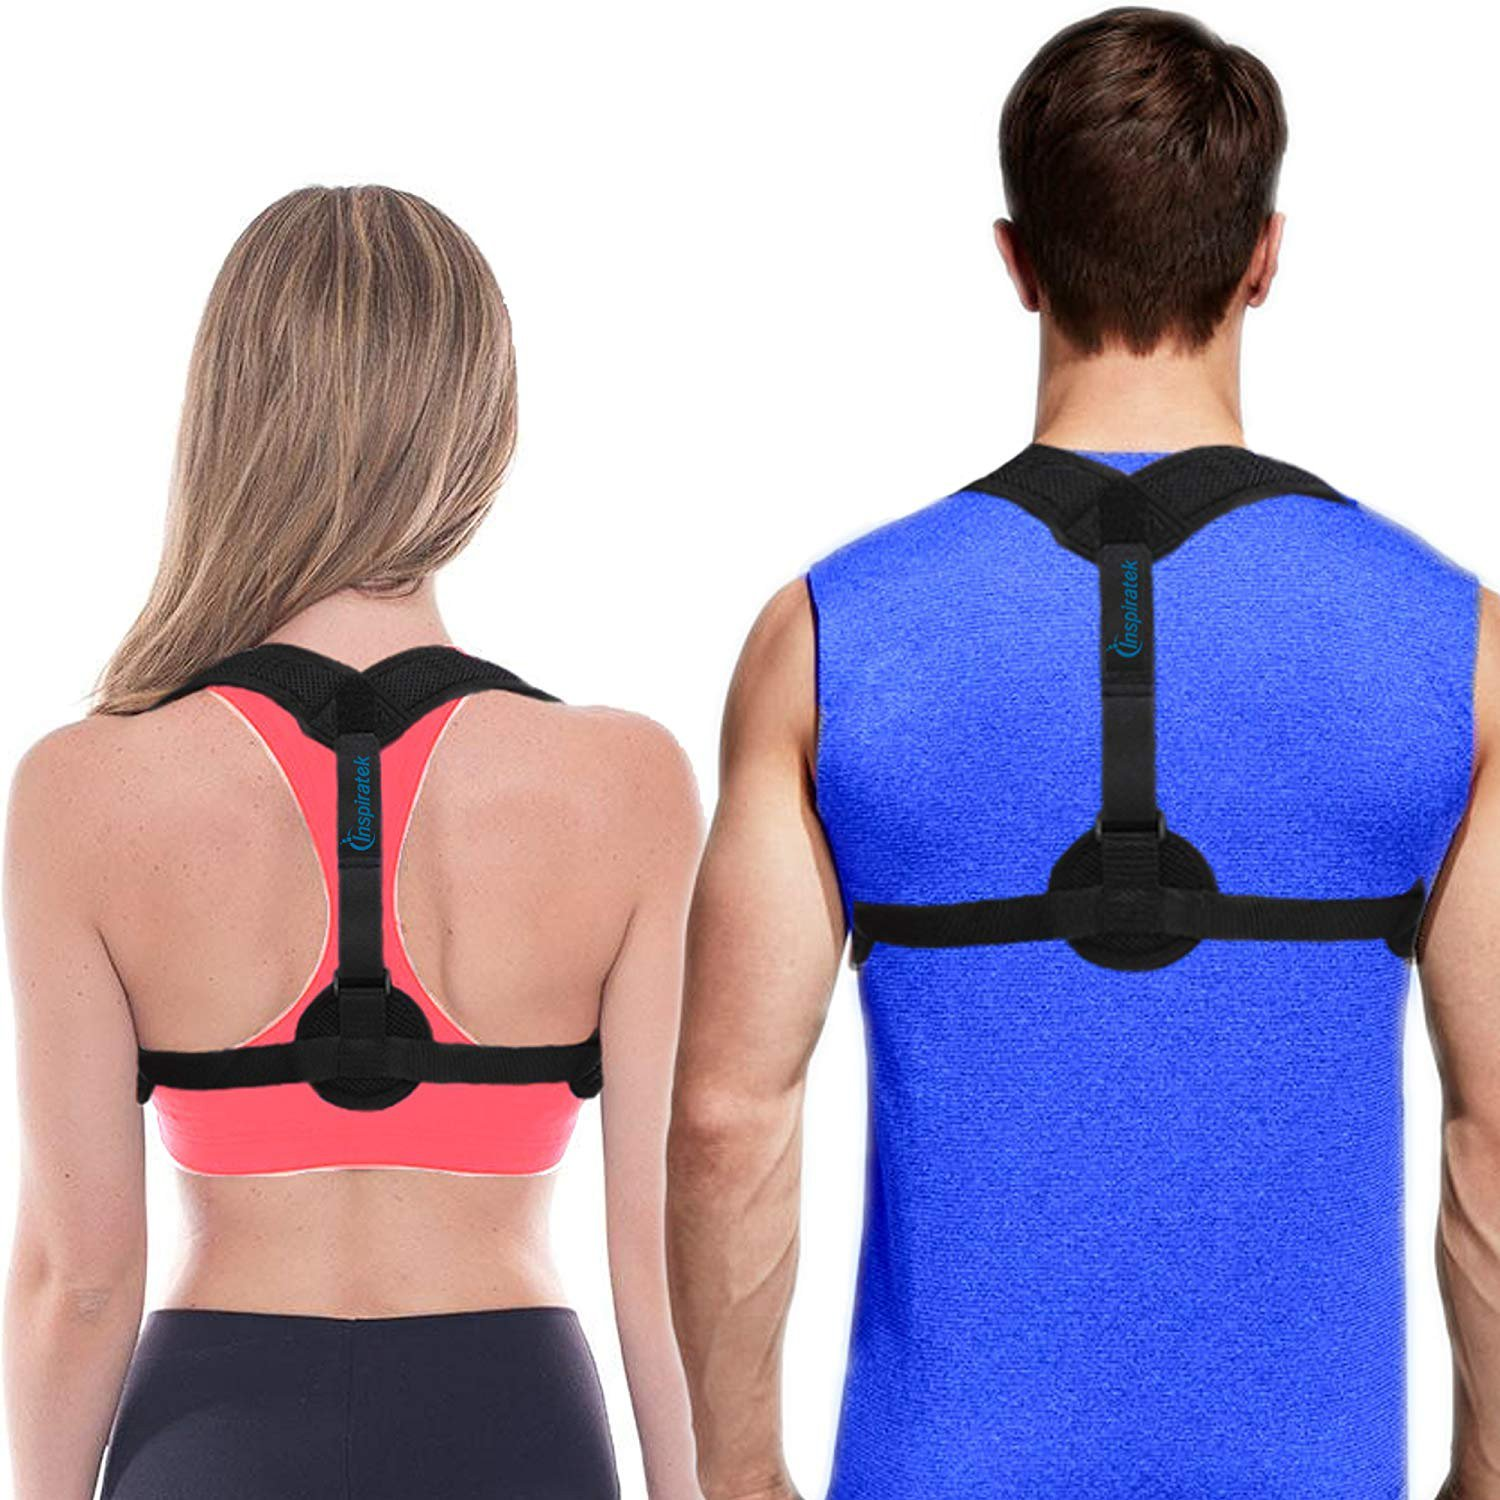 OKUBOX Back correction strap Posture Corrector for Kid Women Men Back Cushion for Lower Back Pain Sciatica Pain Relief for AdultsRelieves Your Back Pain and Retrains Shoulders Adjustable Strap Made